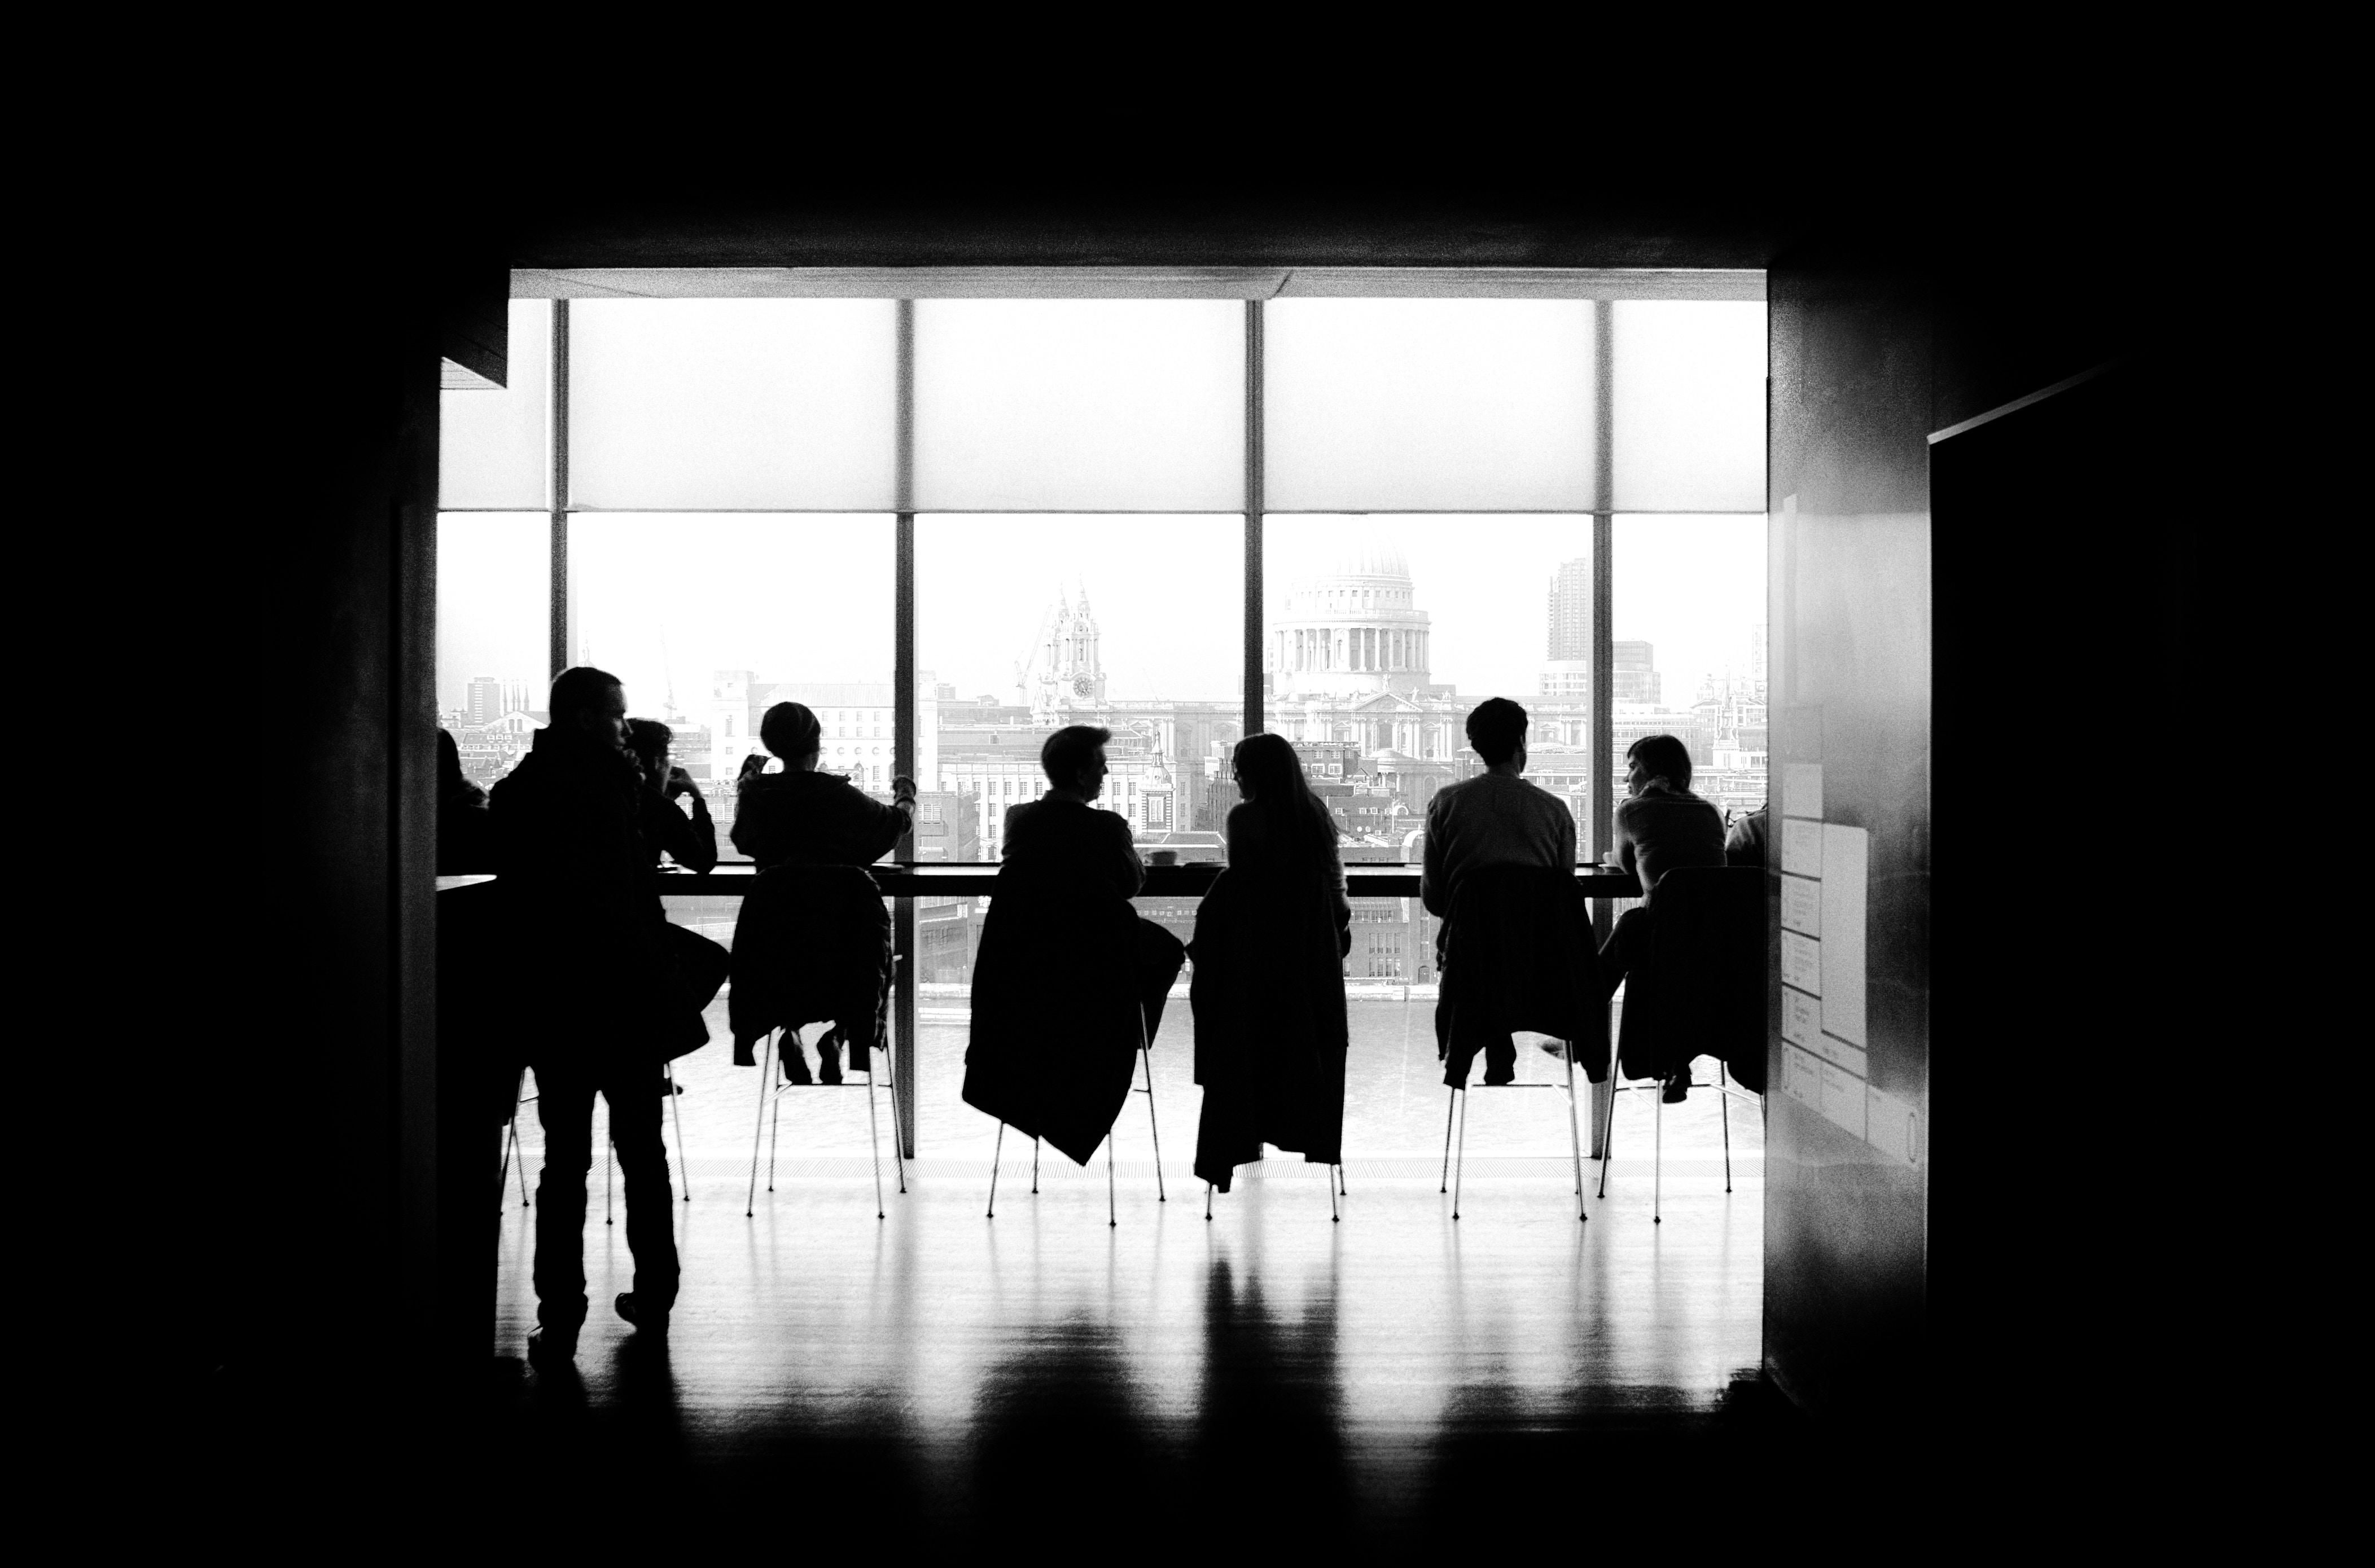 The diversity of meeting participants